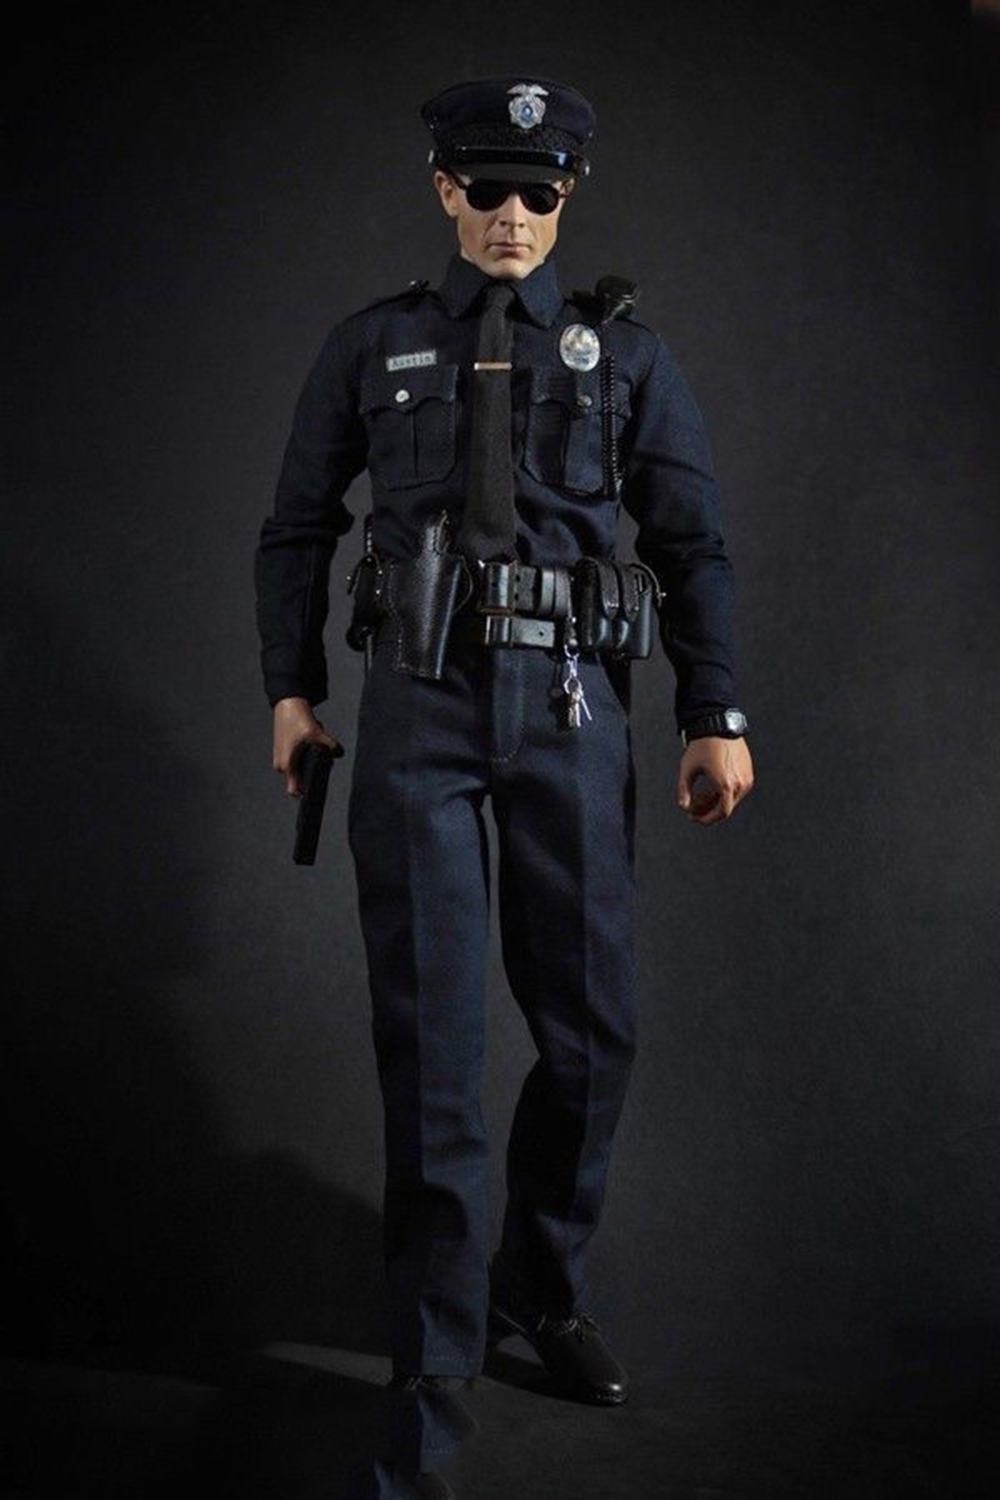 1/6 LAPD Patrol Police Officer Austin MA1009 Whole Box Action Figure For Toys Gifts Collections